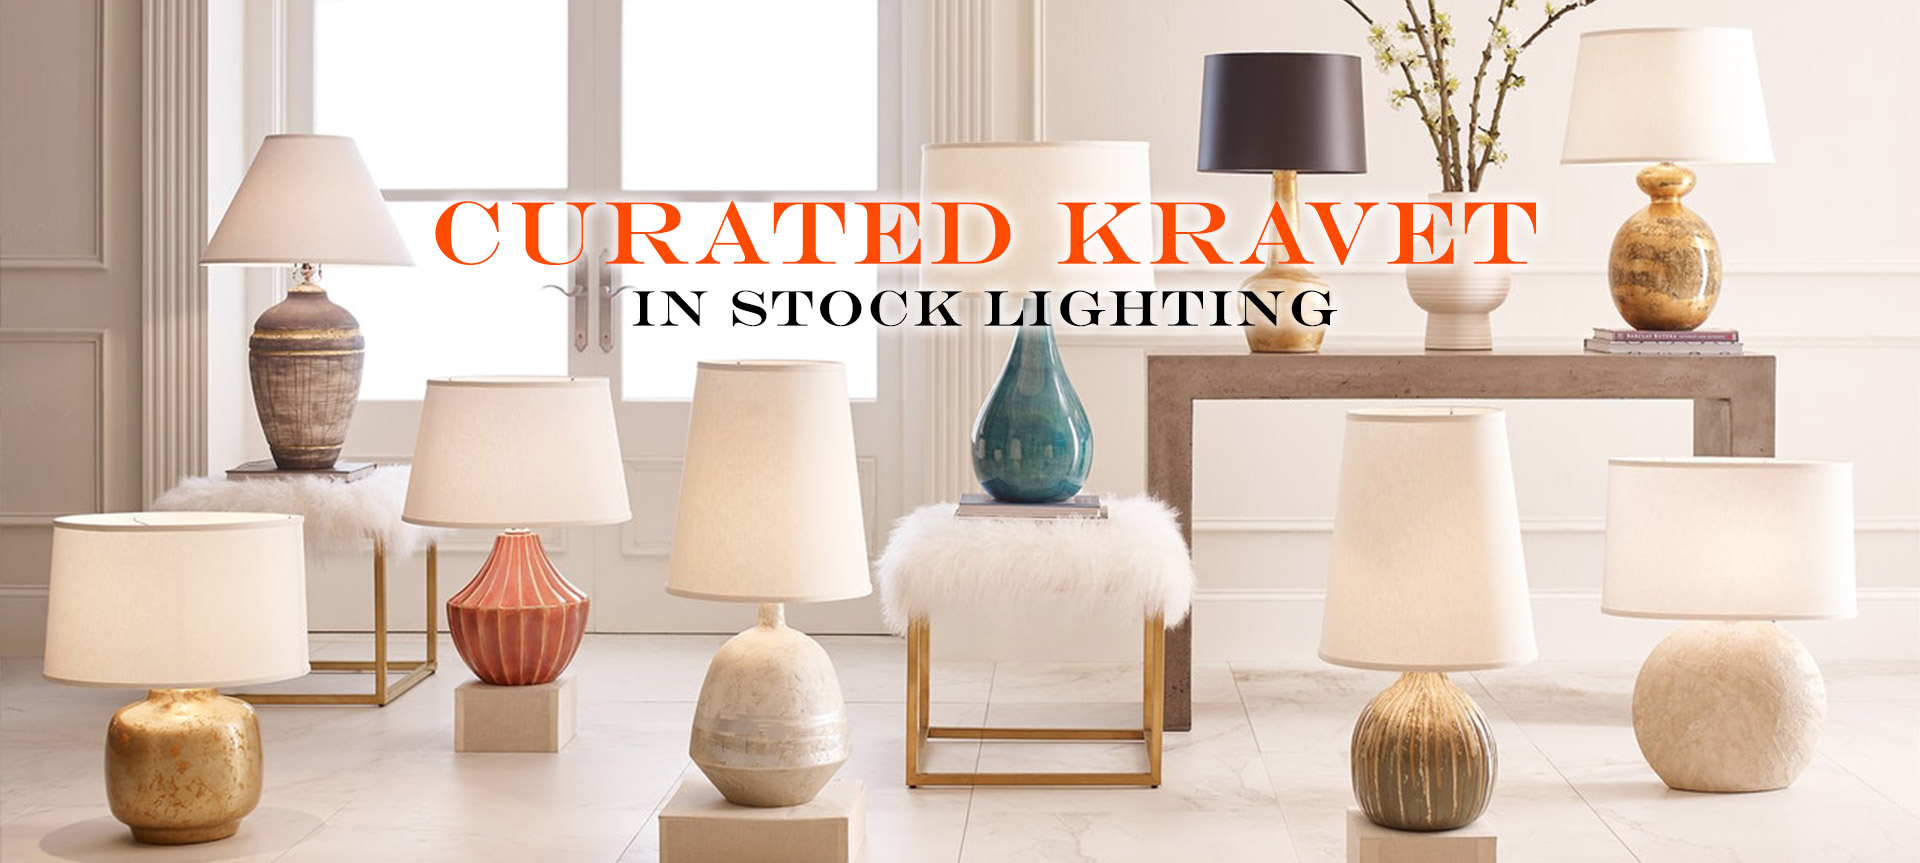 Shop Curated Kravet In Stock Lighting